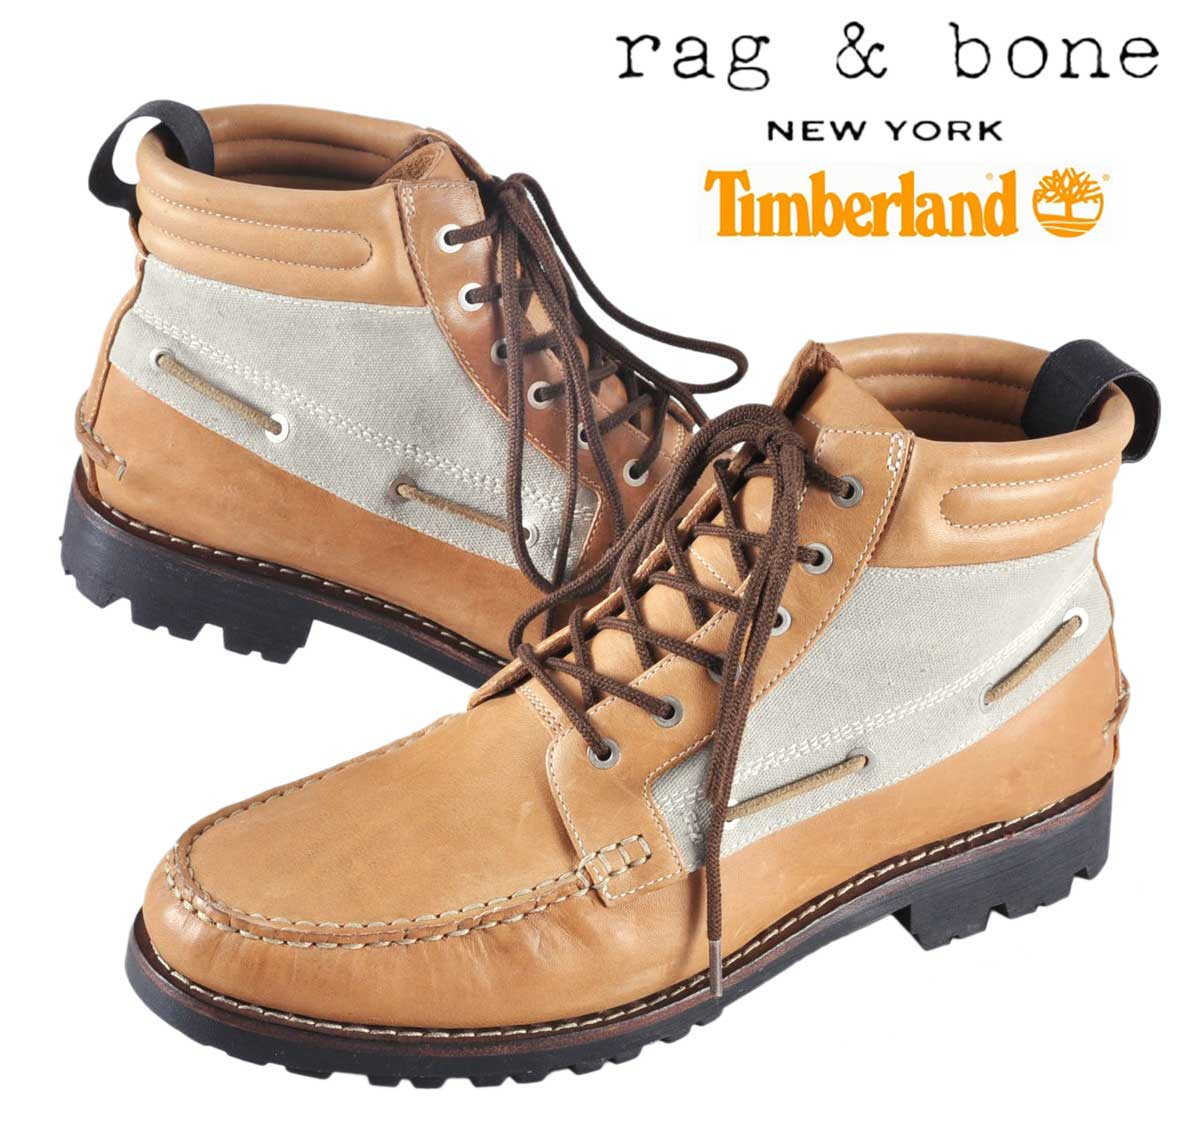 Timberland×rag &bone Timberland x rag & bone / boat chukka boots outed  about / camel brown leather / canvas / JPN27.0cm: